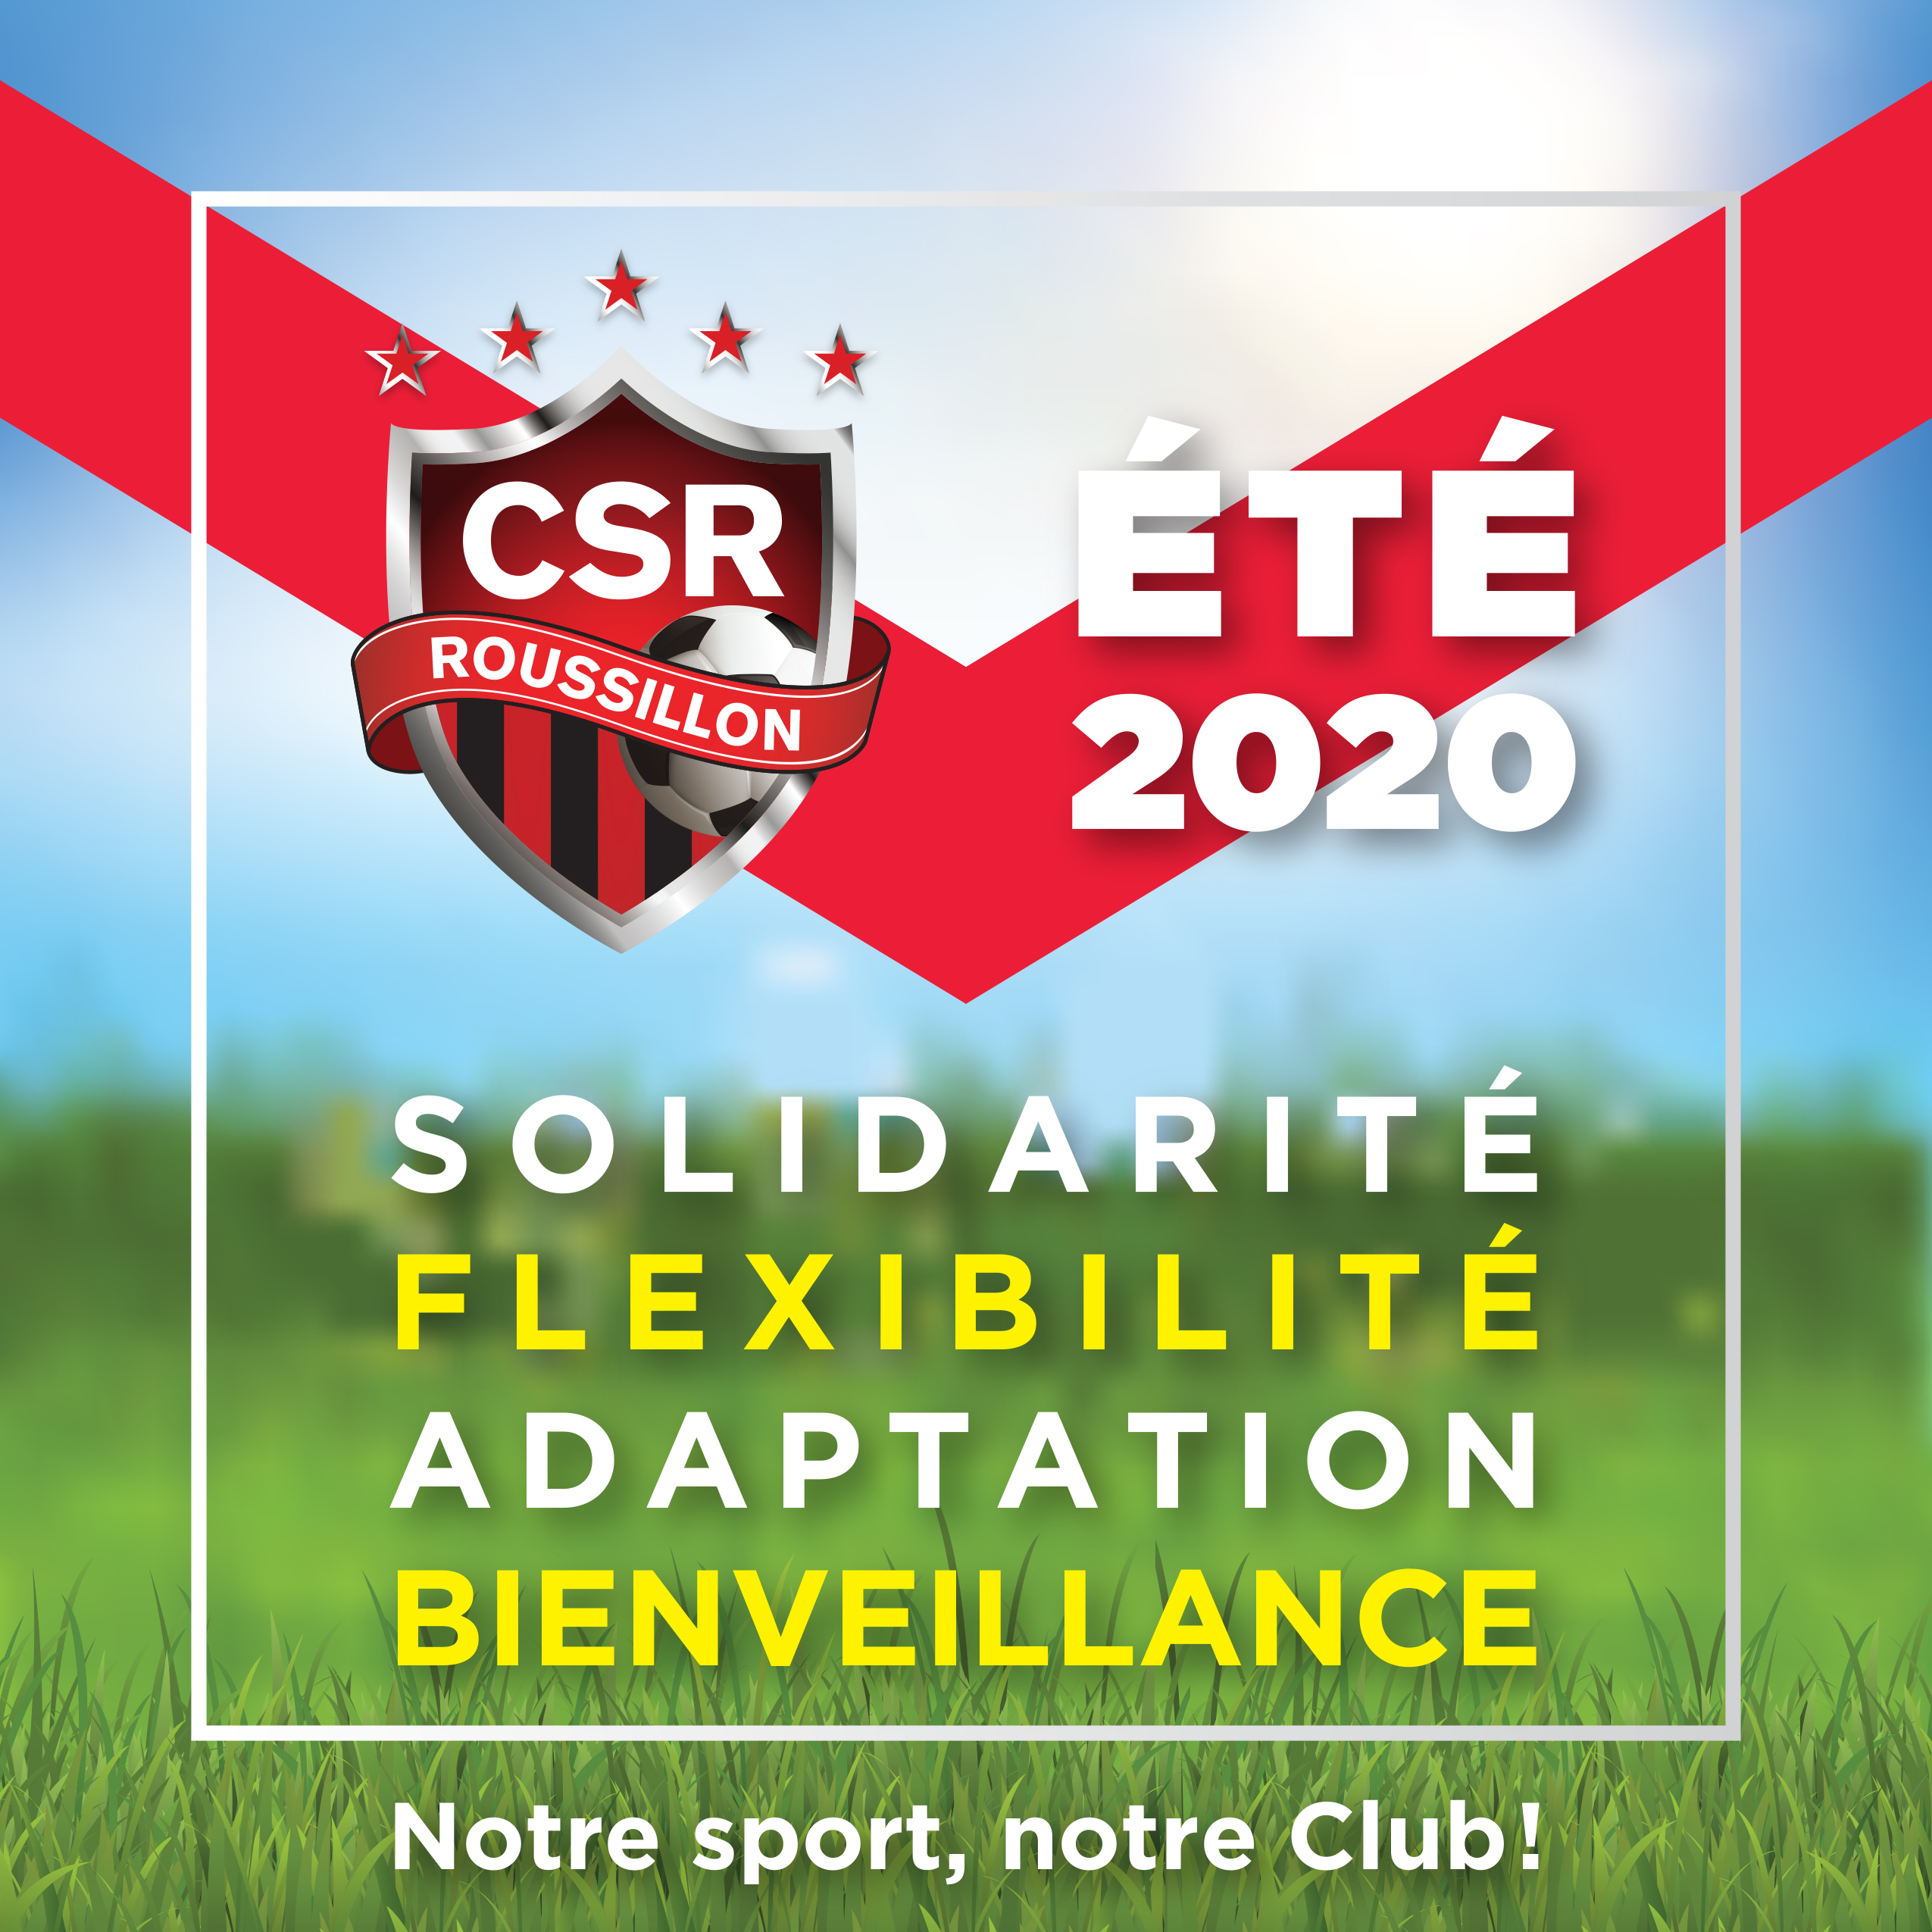 inscription 2020 été